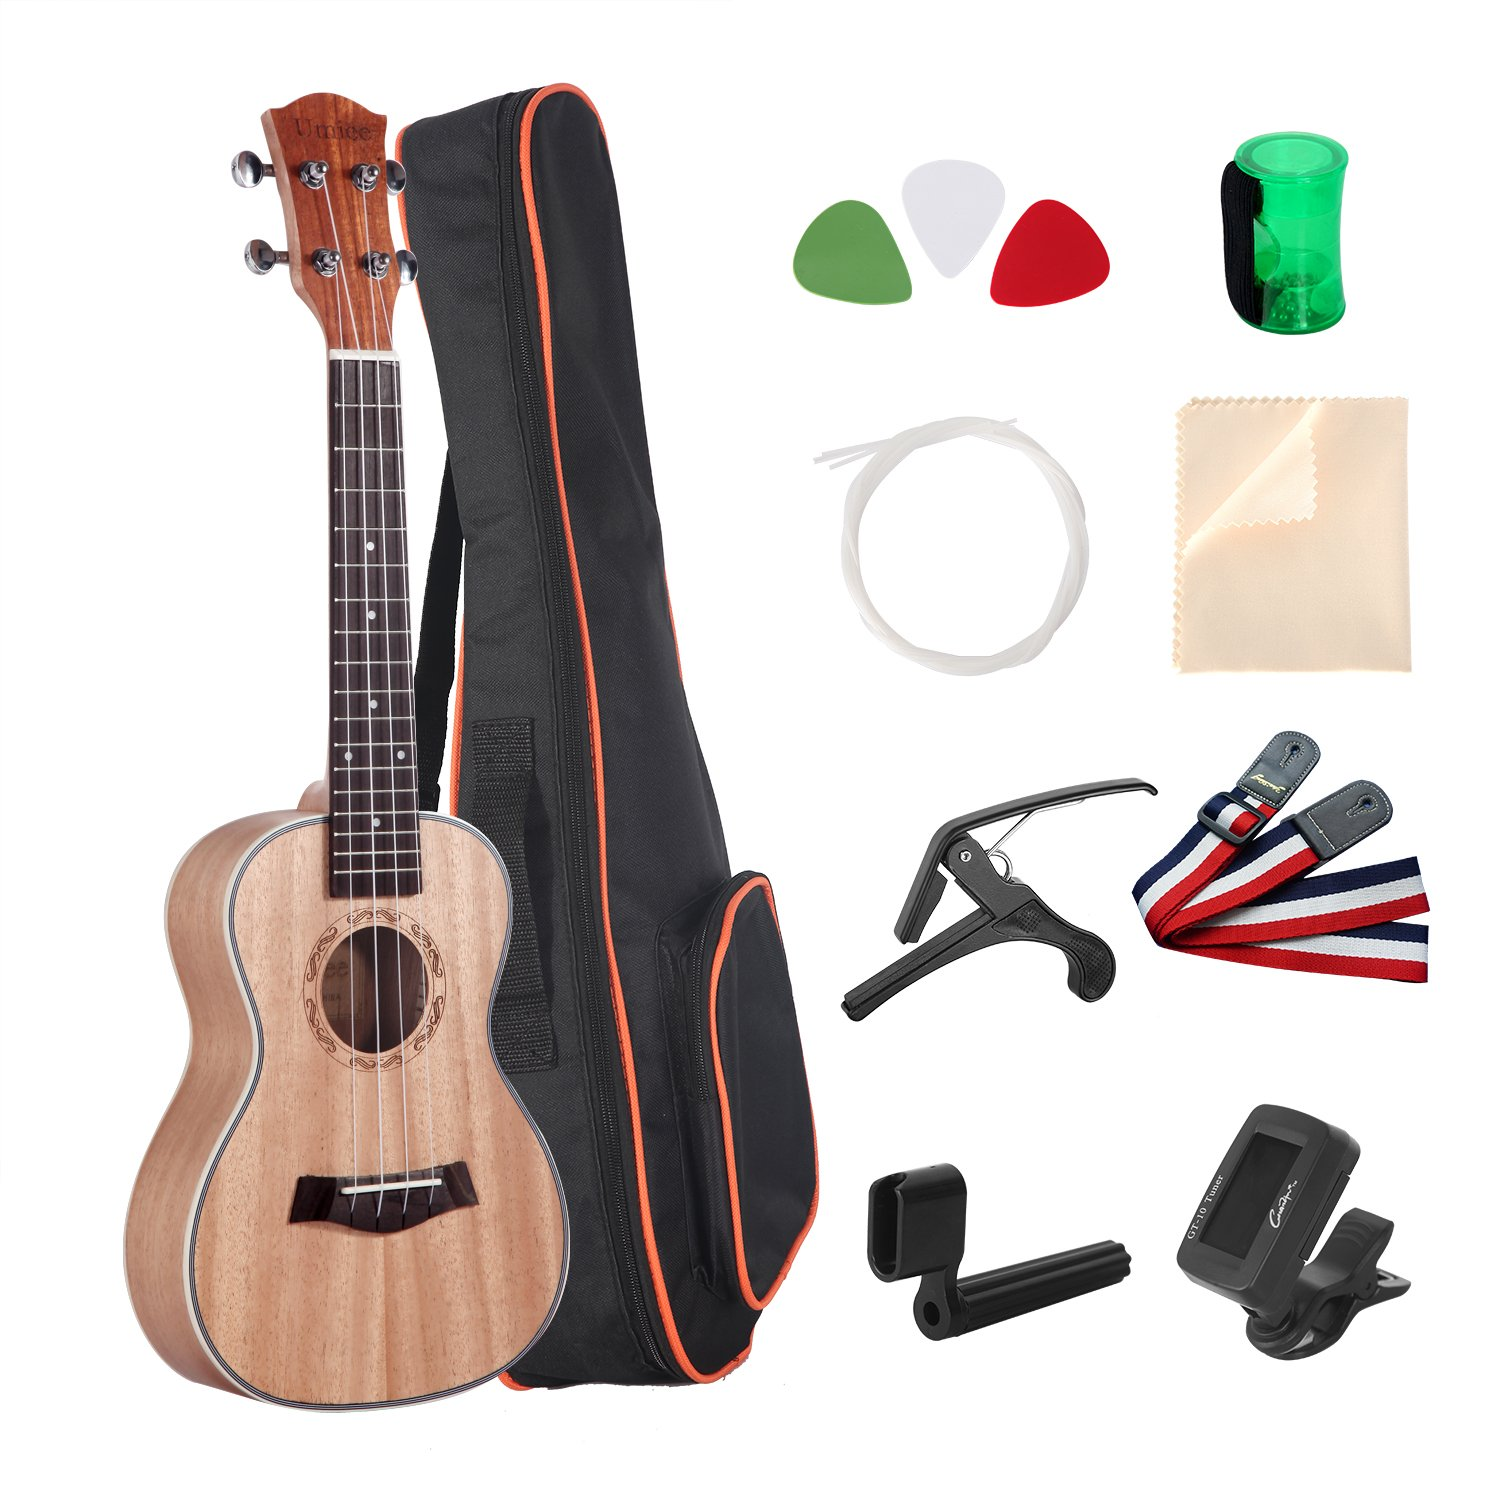 Umiee Concert Ukulele Mahogany, 23 inch Ukulele Starter Kits with Tuner/Strap/Carry Bag/Picks/Aquila String/Capo/Grover/Percussion Musical Egg/Clear Cloth by Umiee